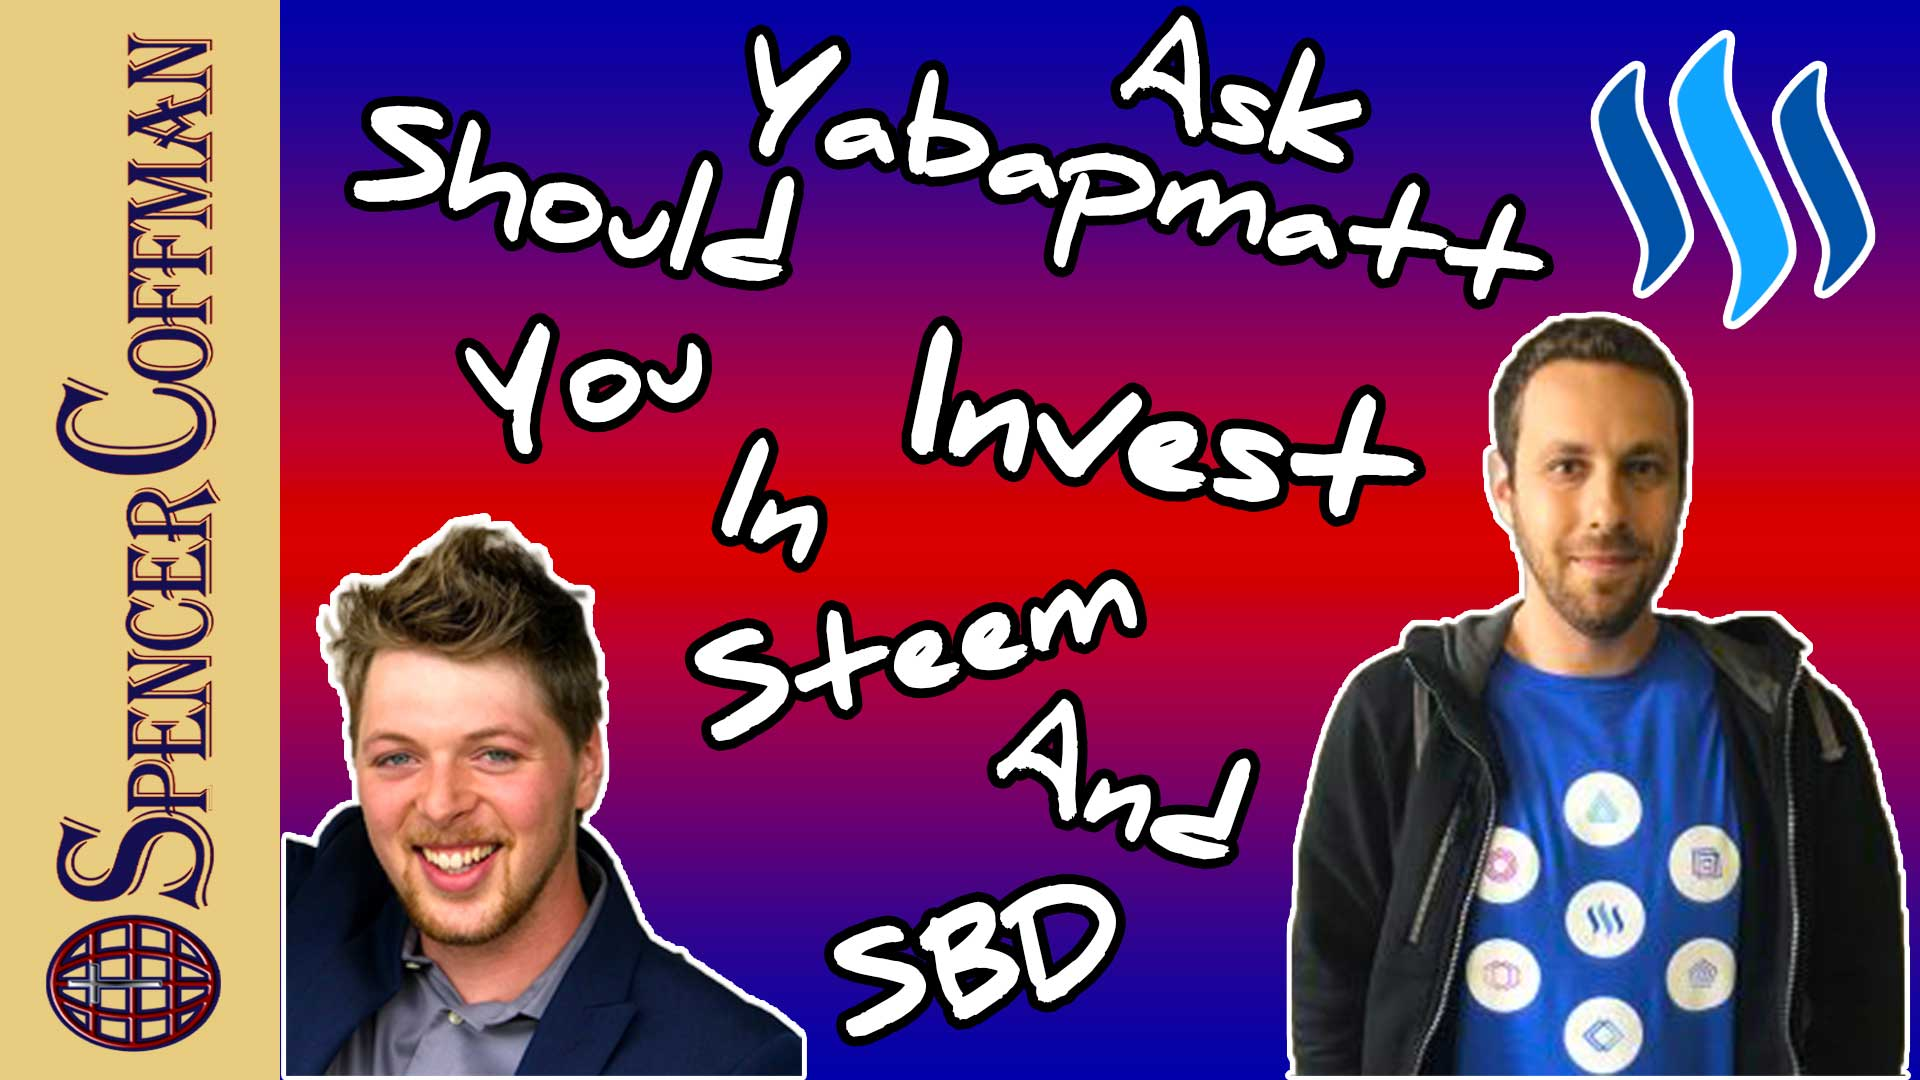 Ask Yabapmatt - Should You Invest In Steem And SBD